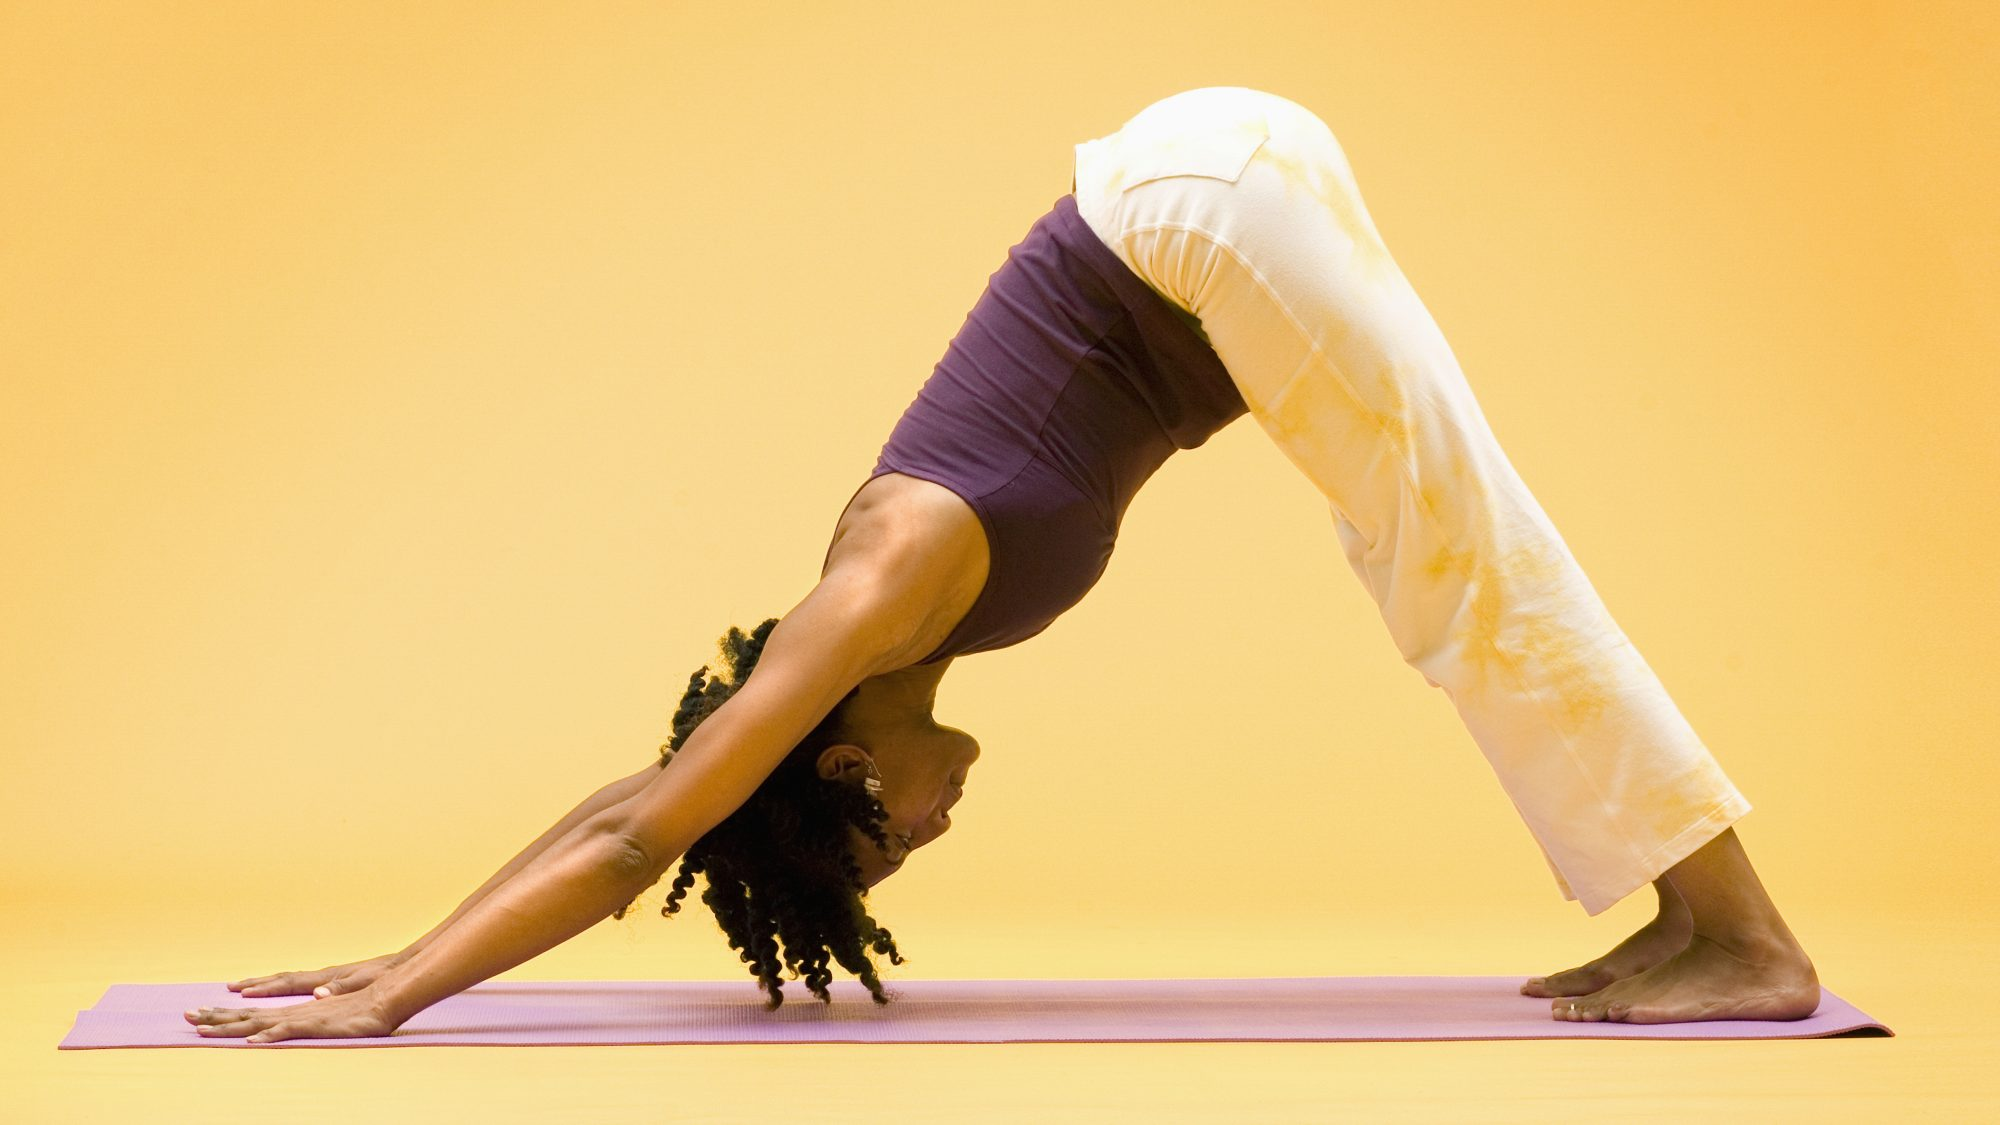 full-body-yoga-moves-for-energy: woman in downward dog yoga